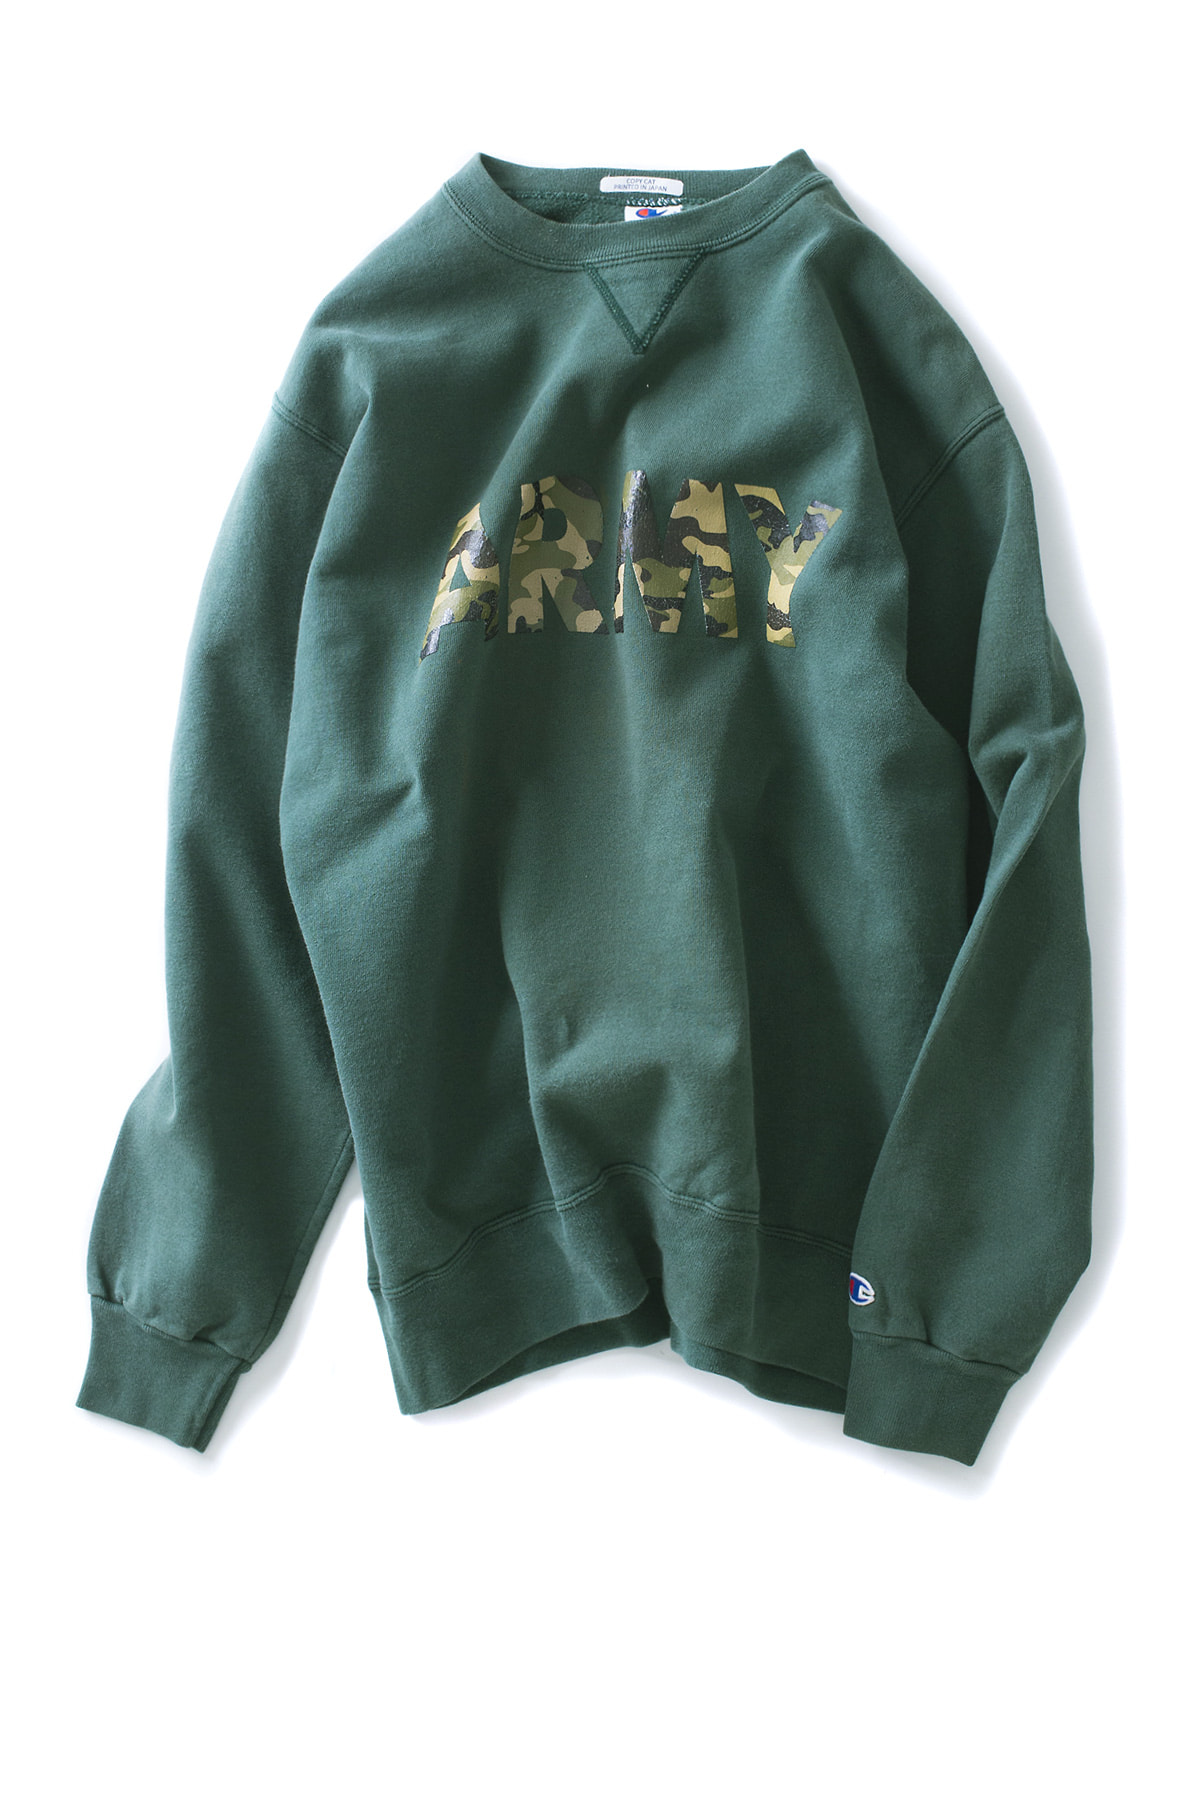 Copy Cat : Champ Crew Neck (Green x Military)